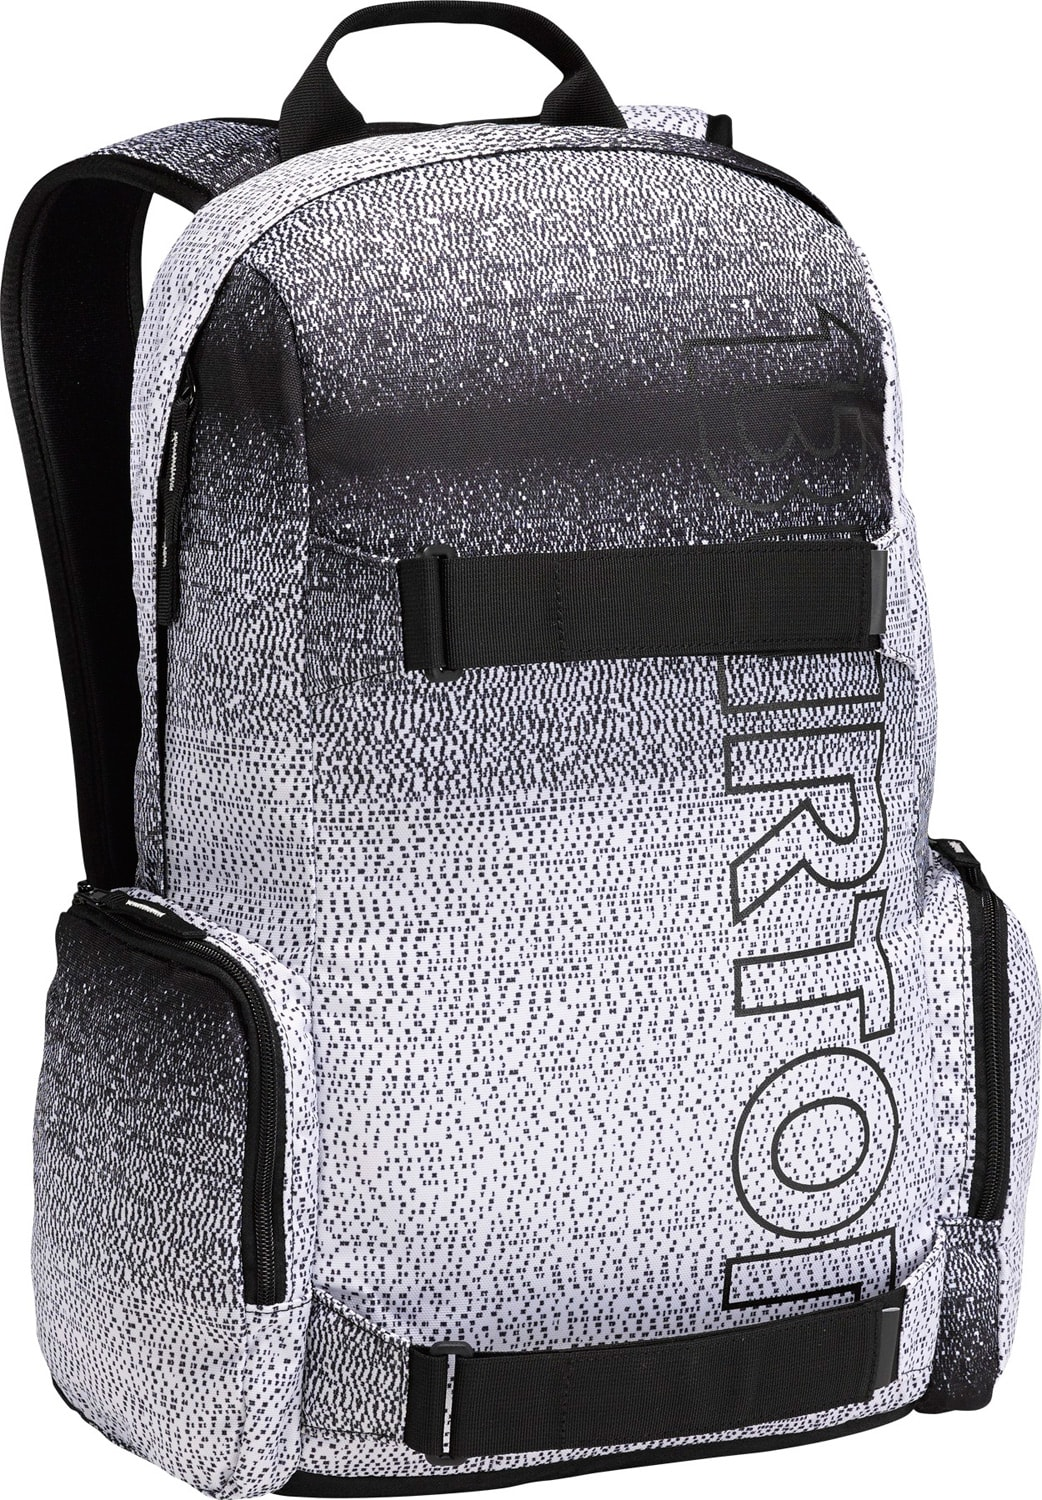 Burton Emphasis Backpack Reeves Fade Stripe 26L